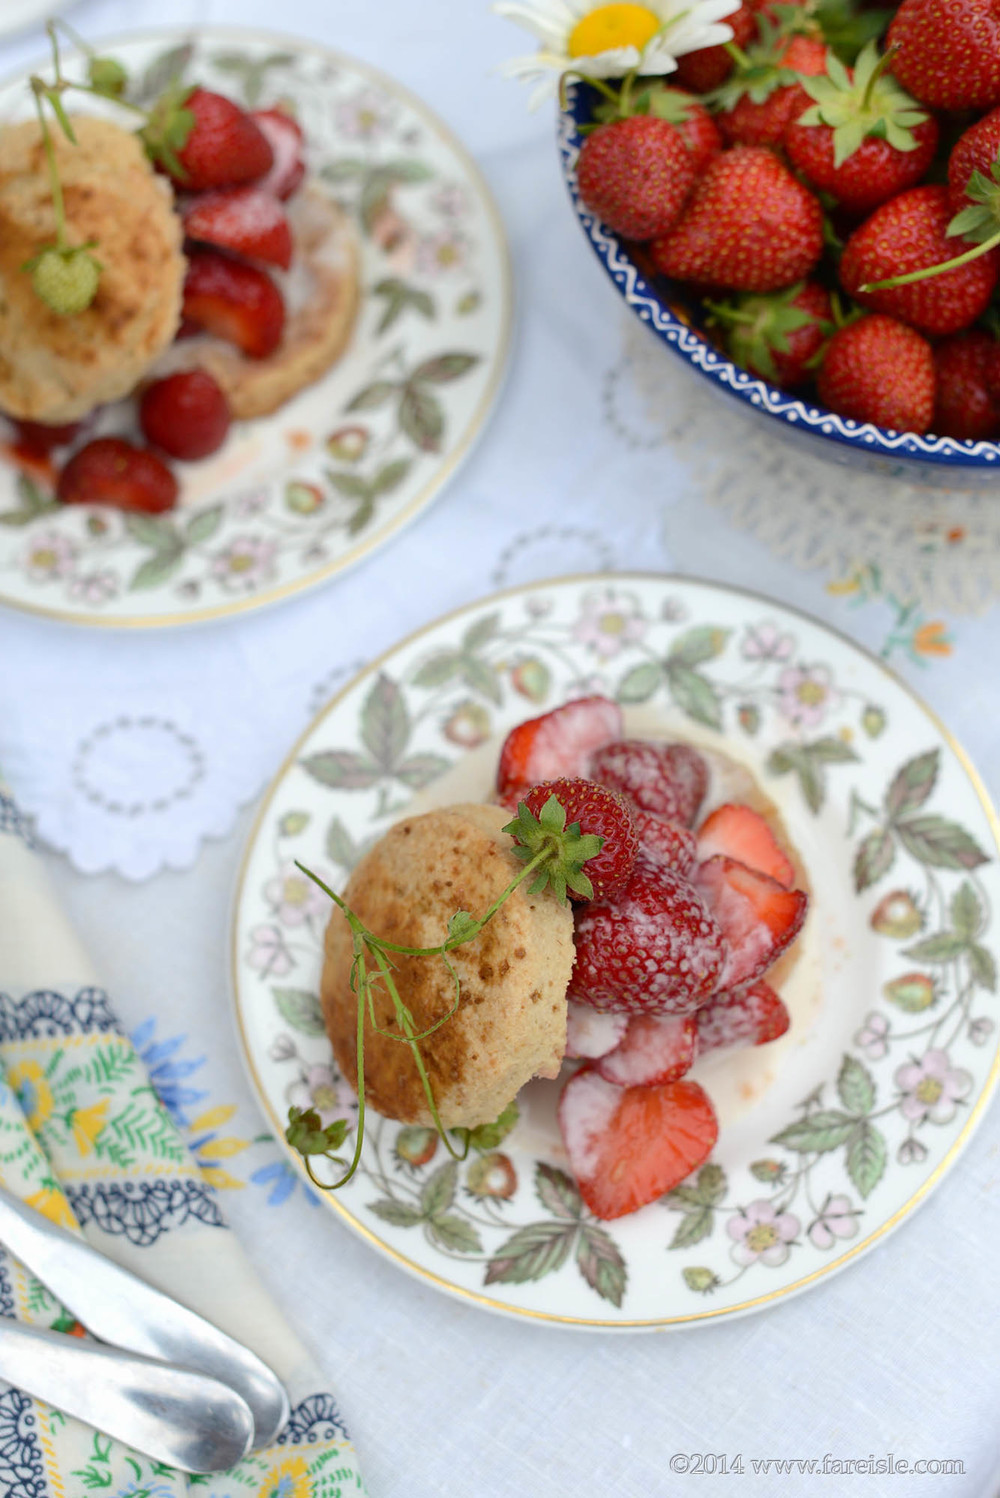 Fare Isle Blog: Vegan Strawberry Shortcakes with Fresh Coconut Cream